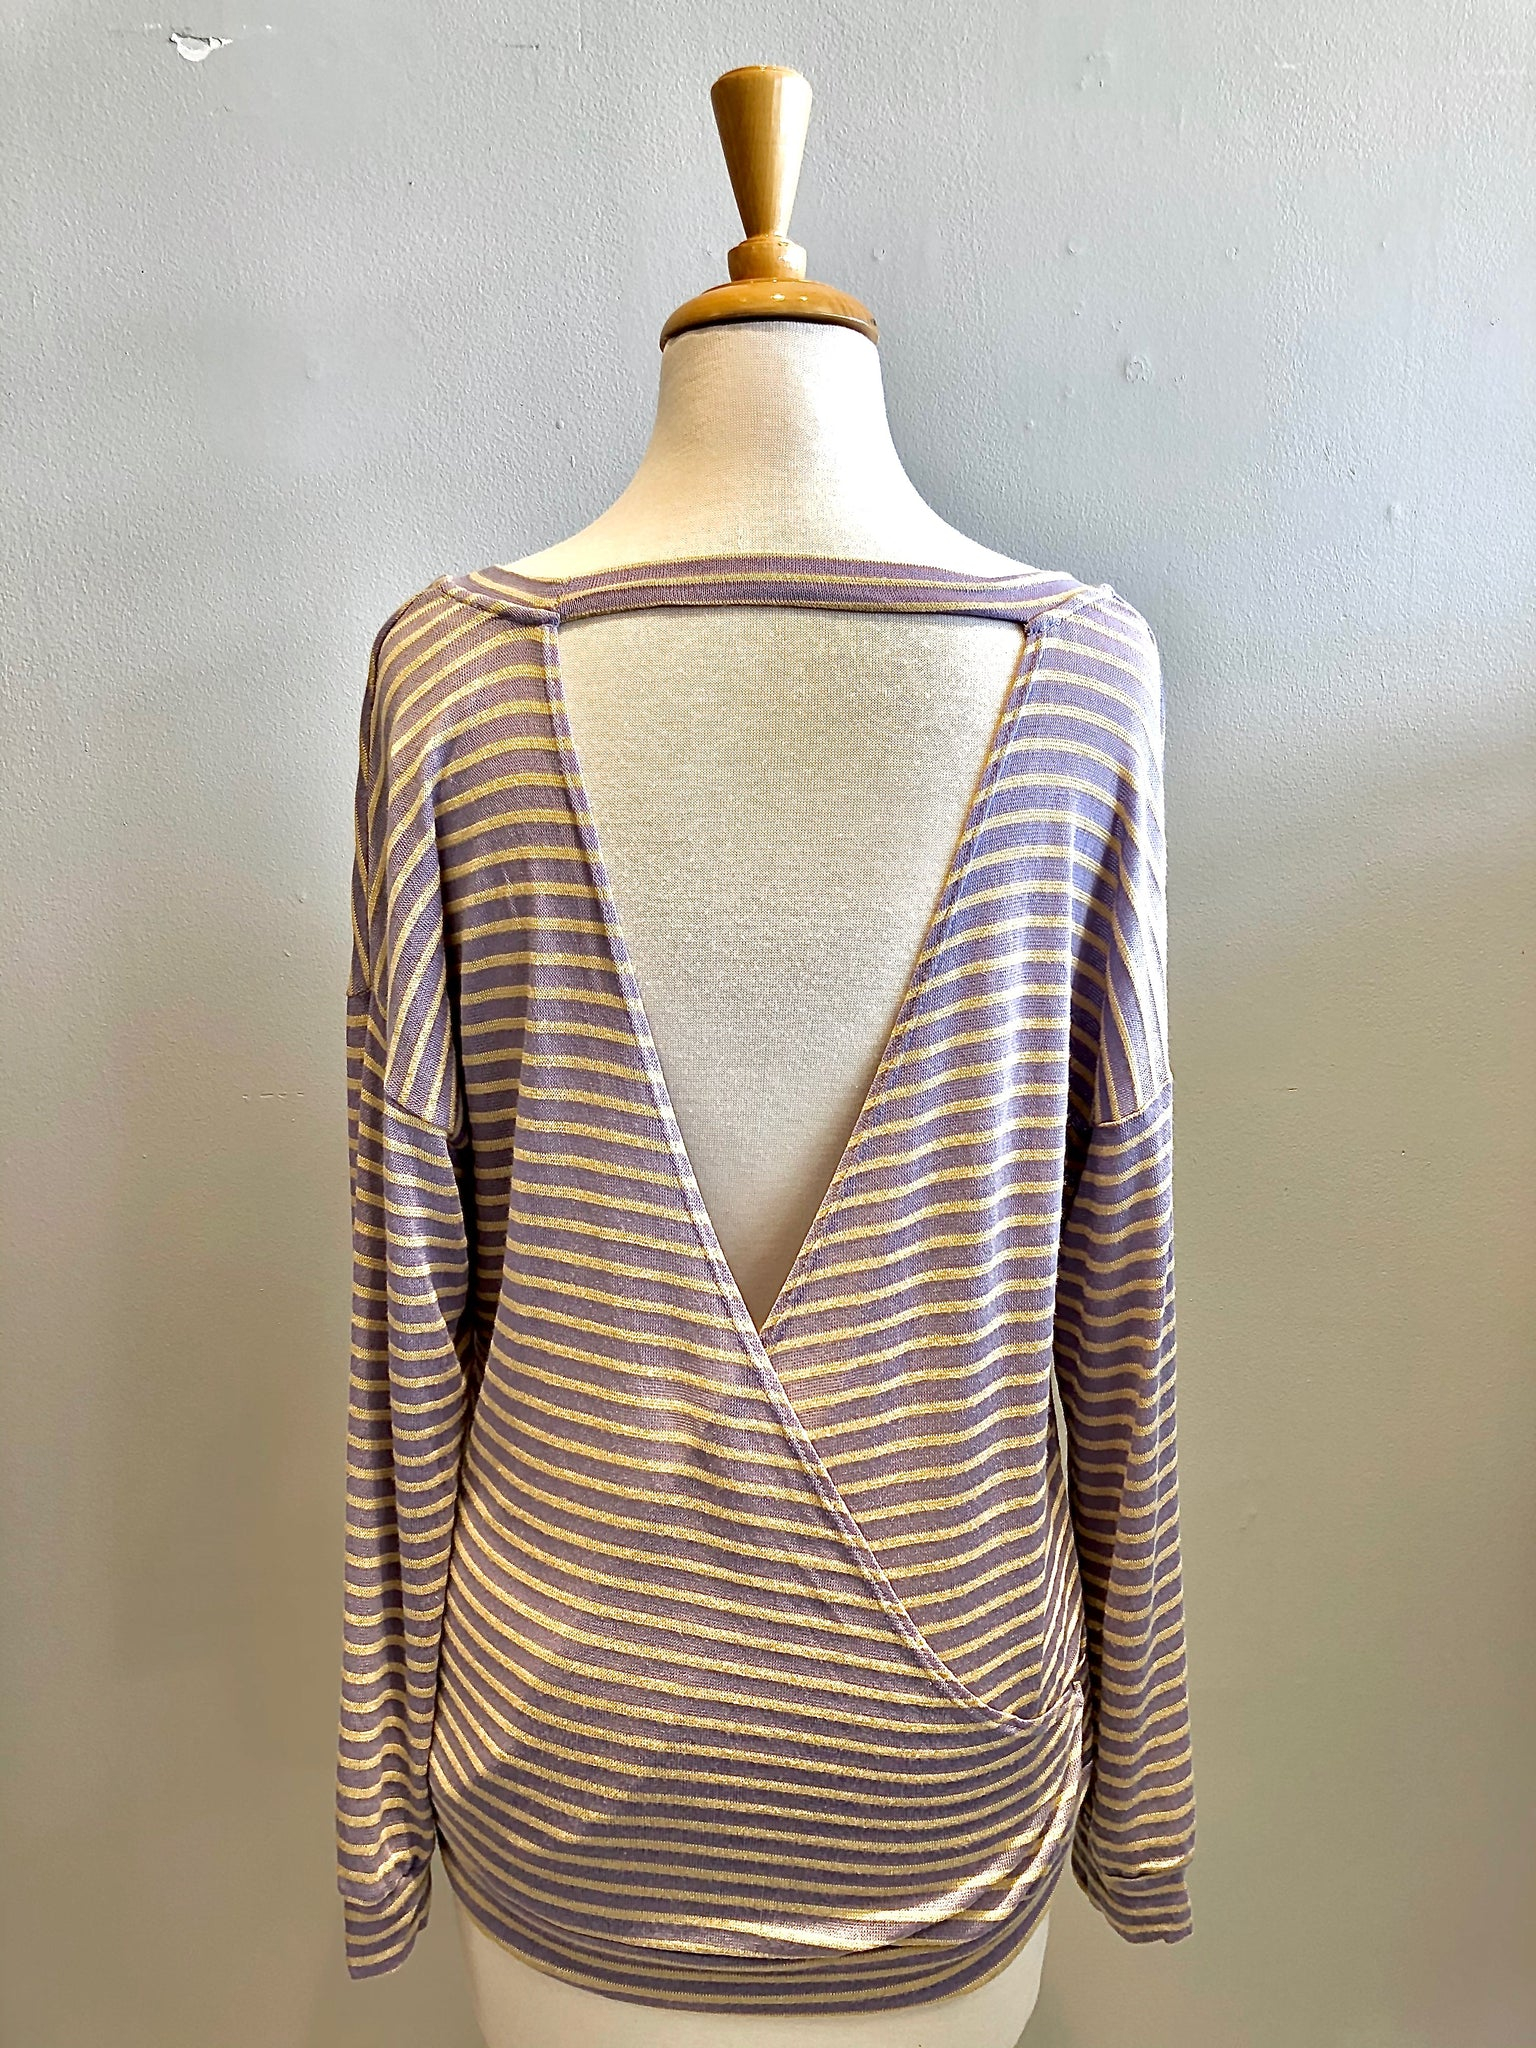 Blu Pepper Striped Open Back Knit Top - Showroom56